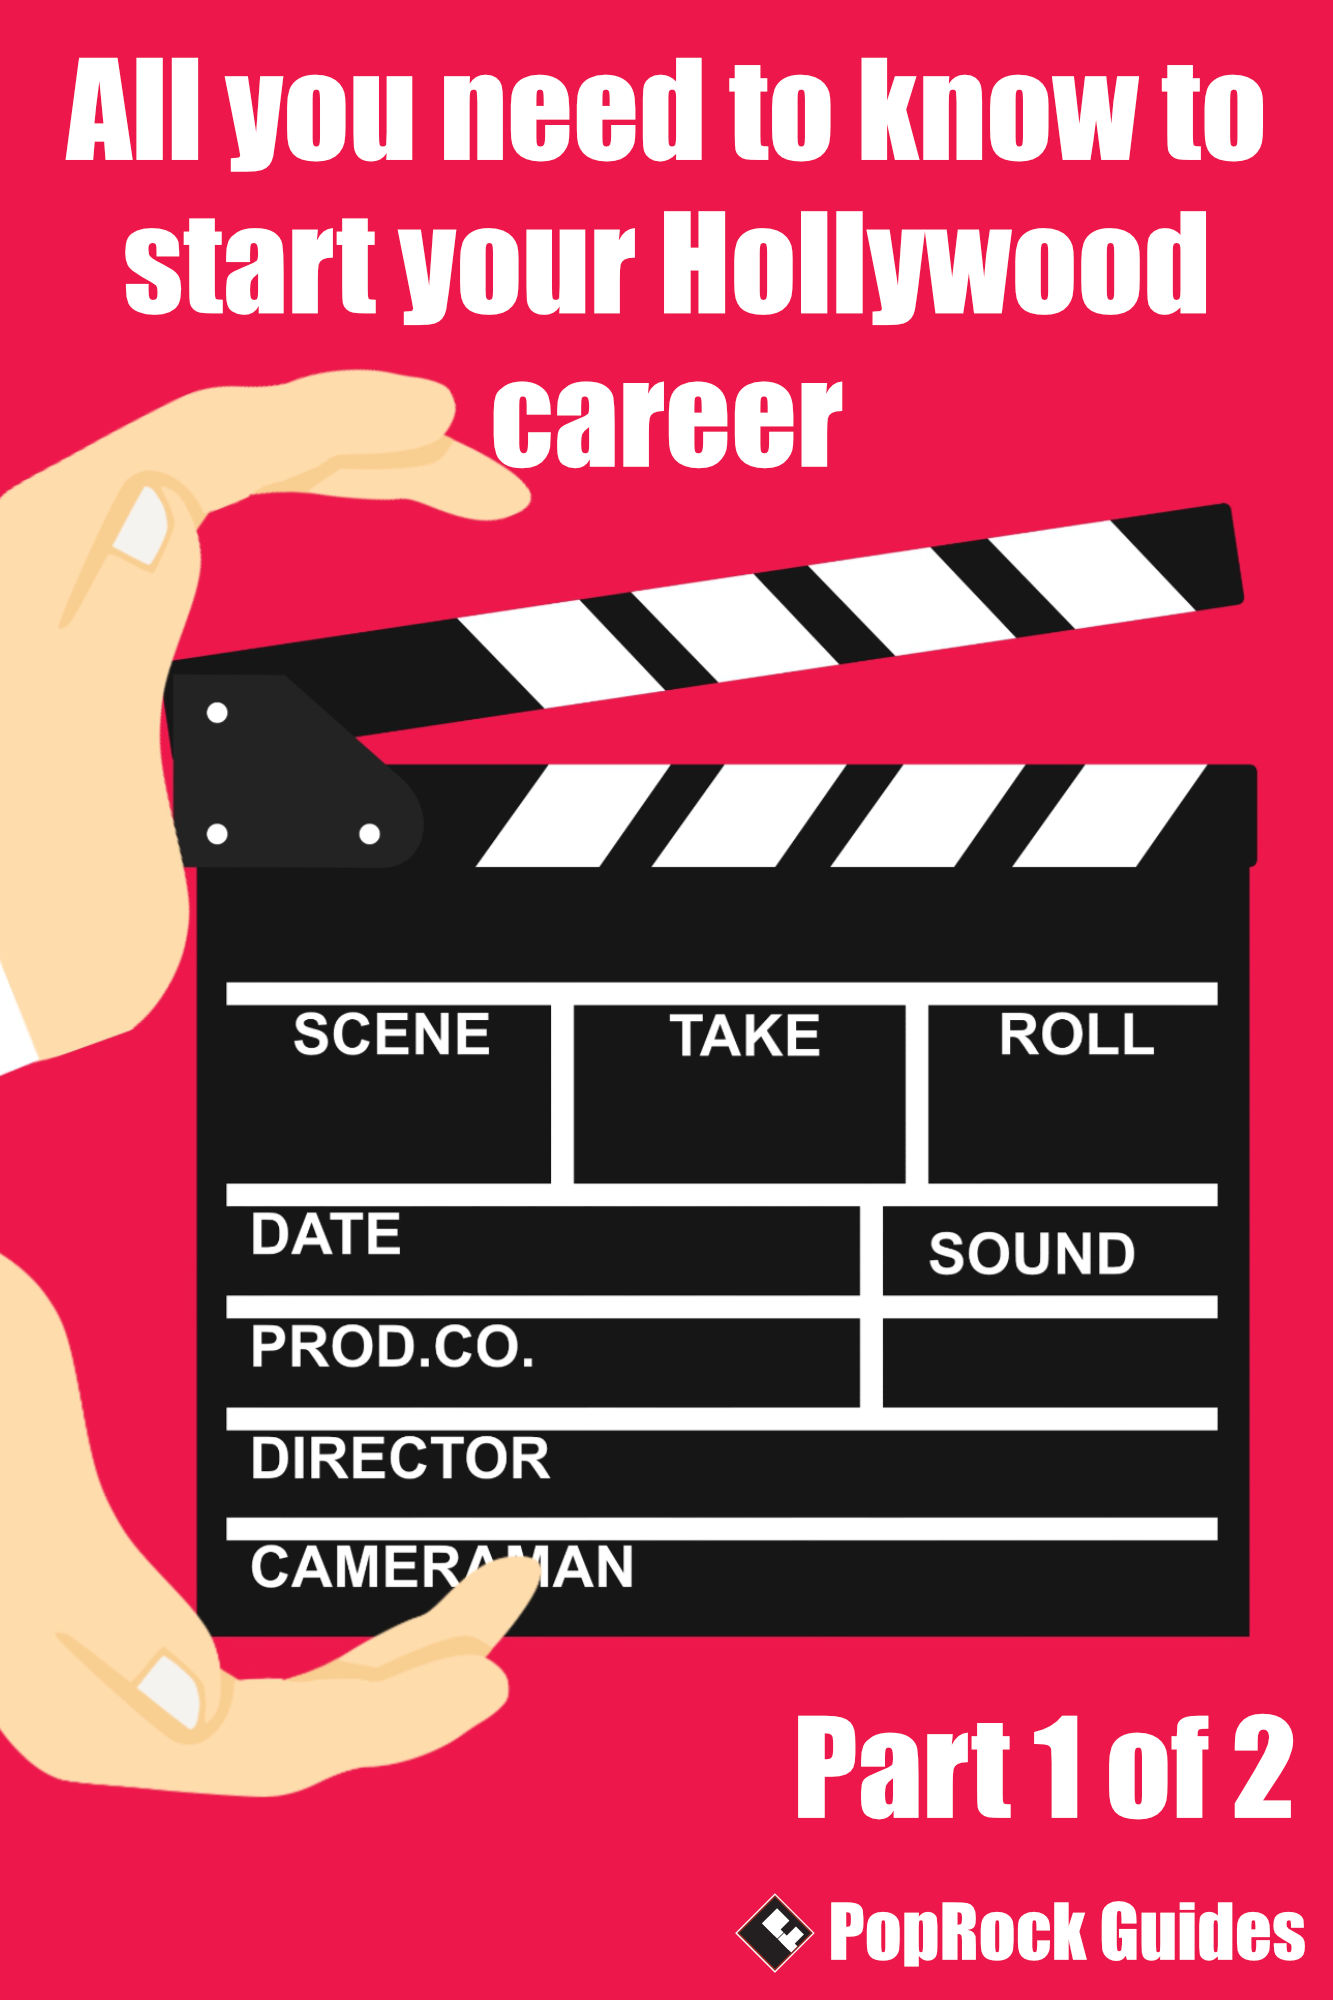 All You Need To Know To Start Your Hollywood Career